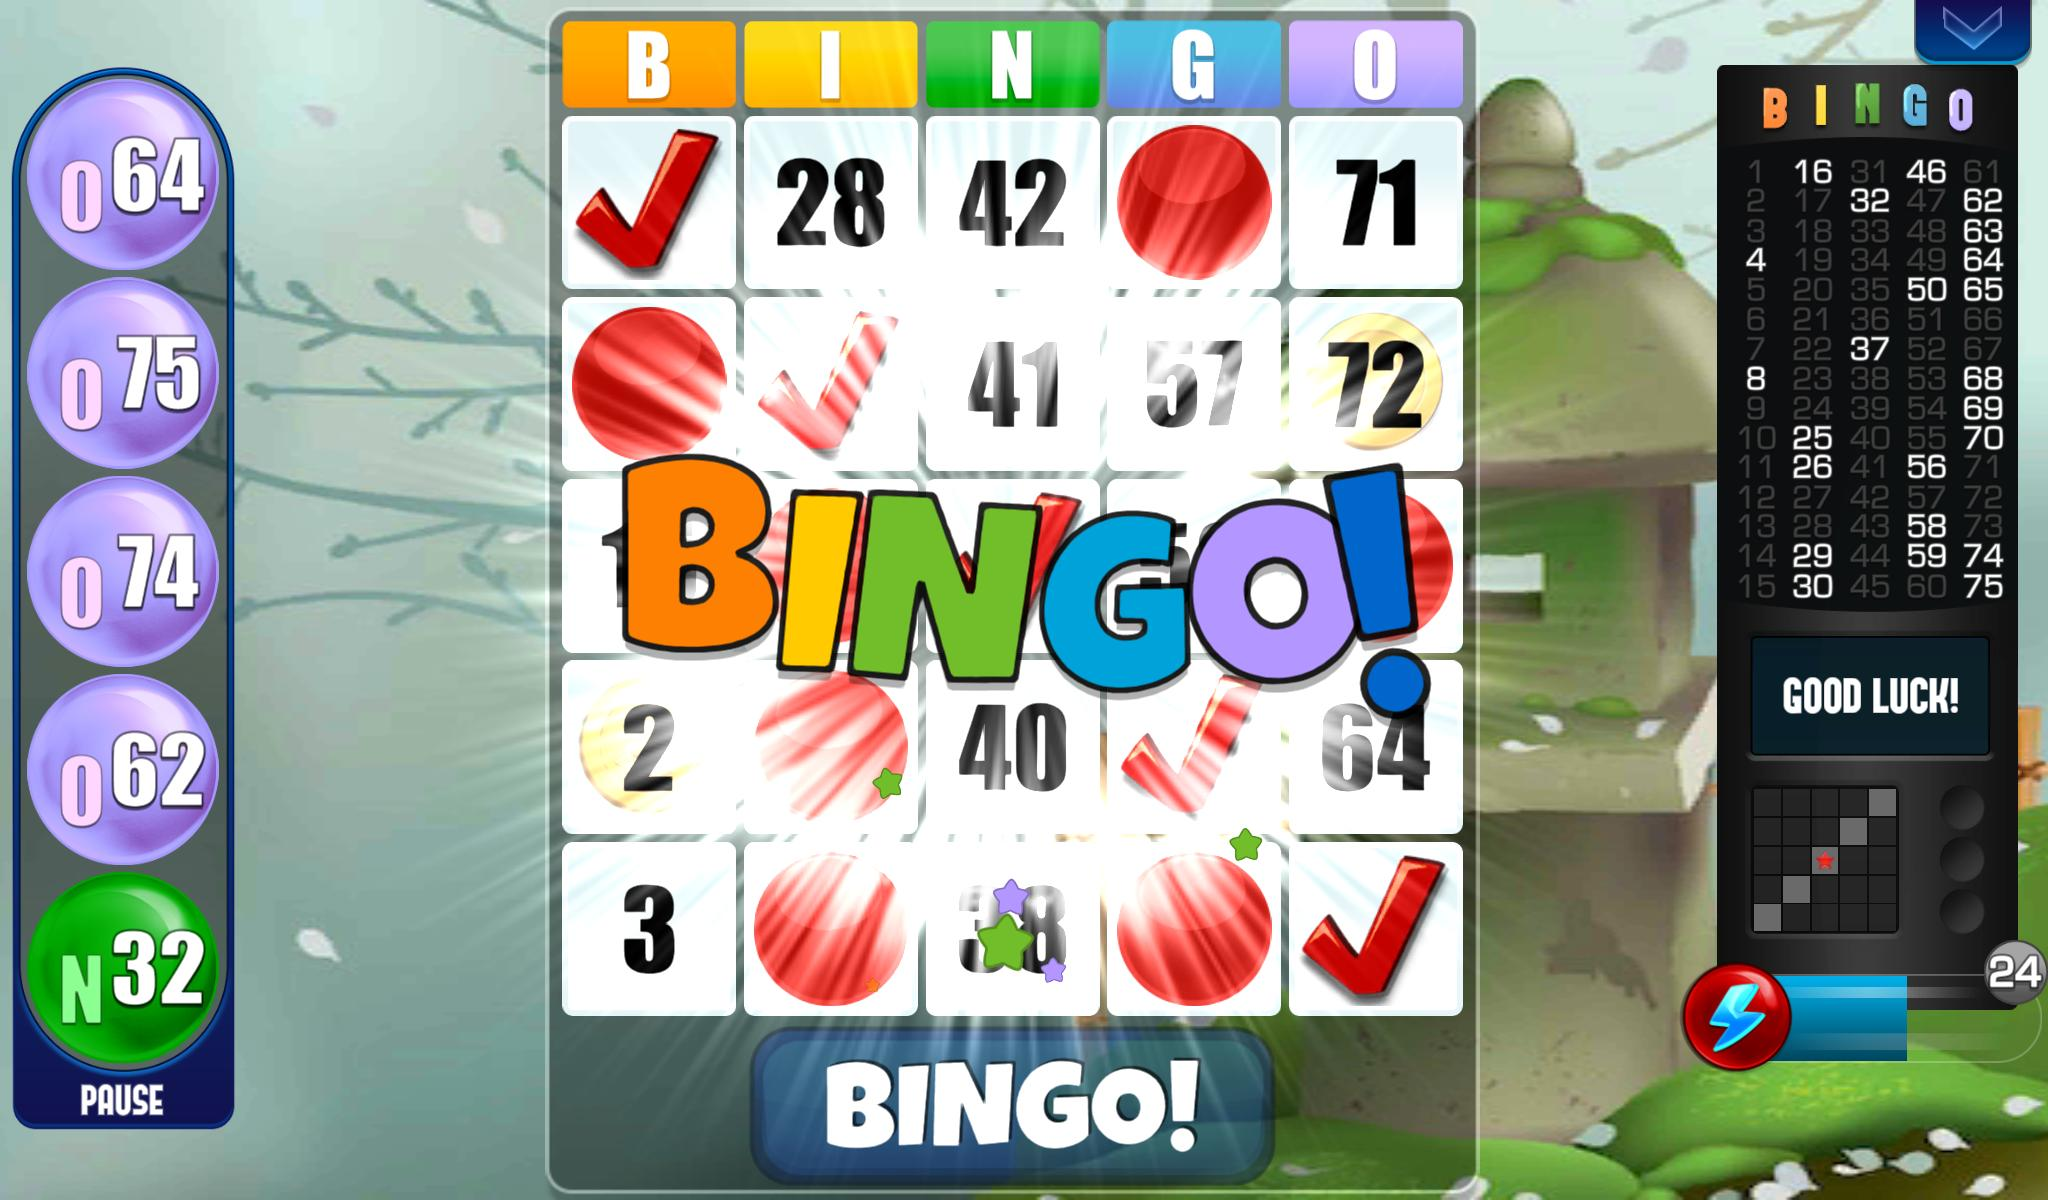 Bingo - Free Bingo Games 2.05.003 Screenshot 5